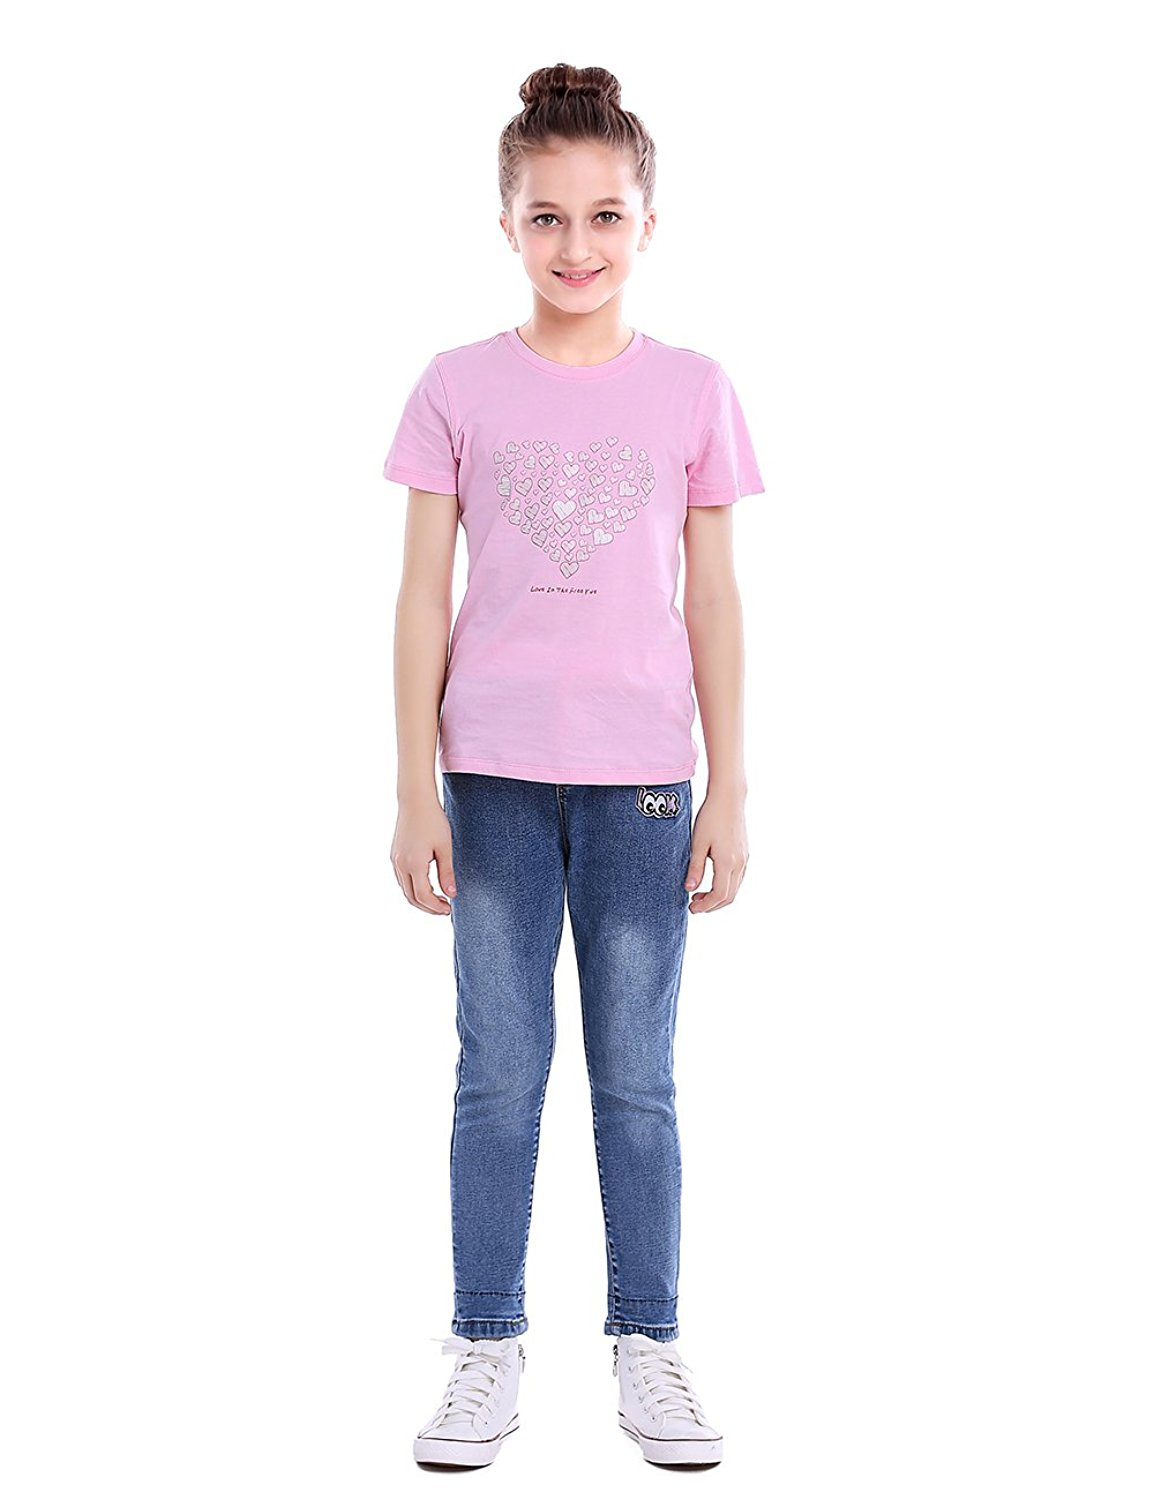 HOLLAGLEE Girls Premium Skinny Jeans Slim Fit for Toddlers and Big Girls